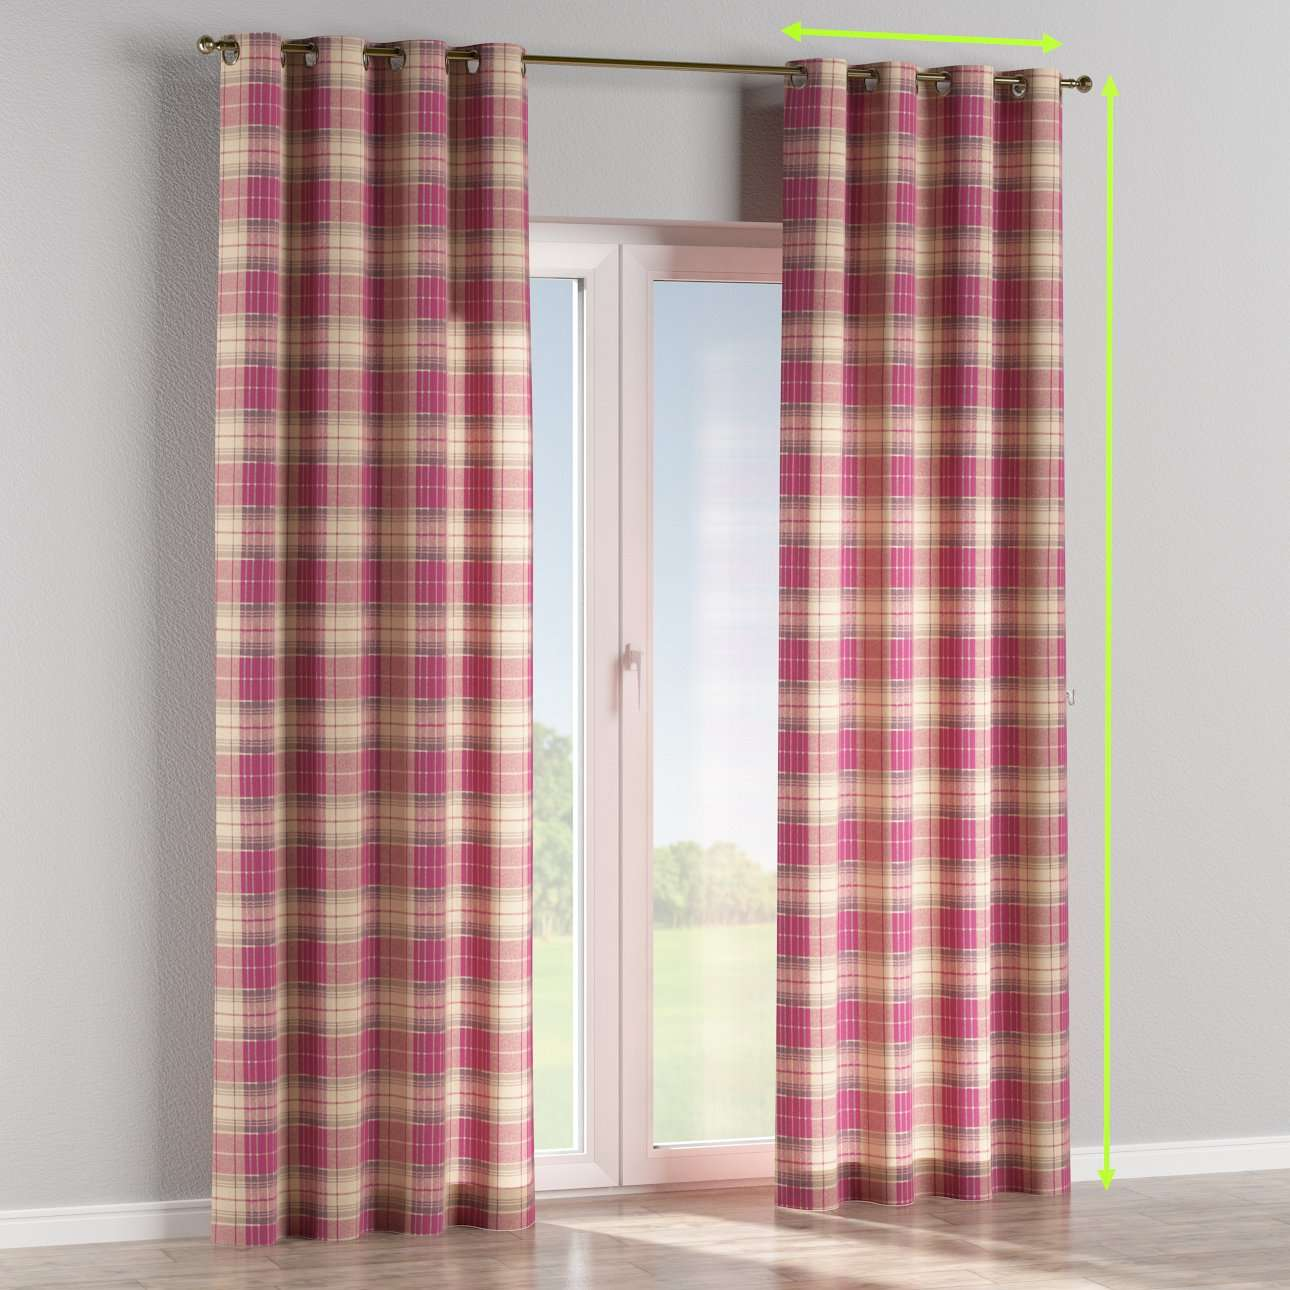 Eyelet lined curtains in collection Mirella, fabric: 142-07